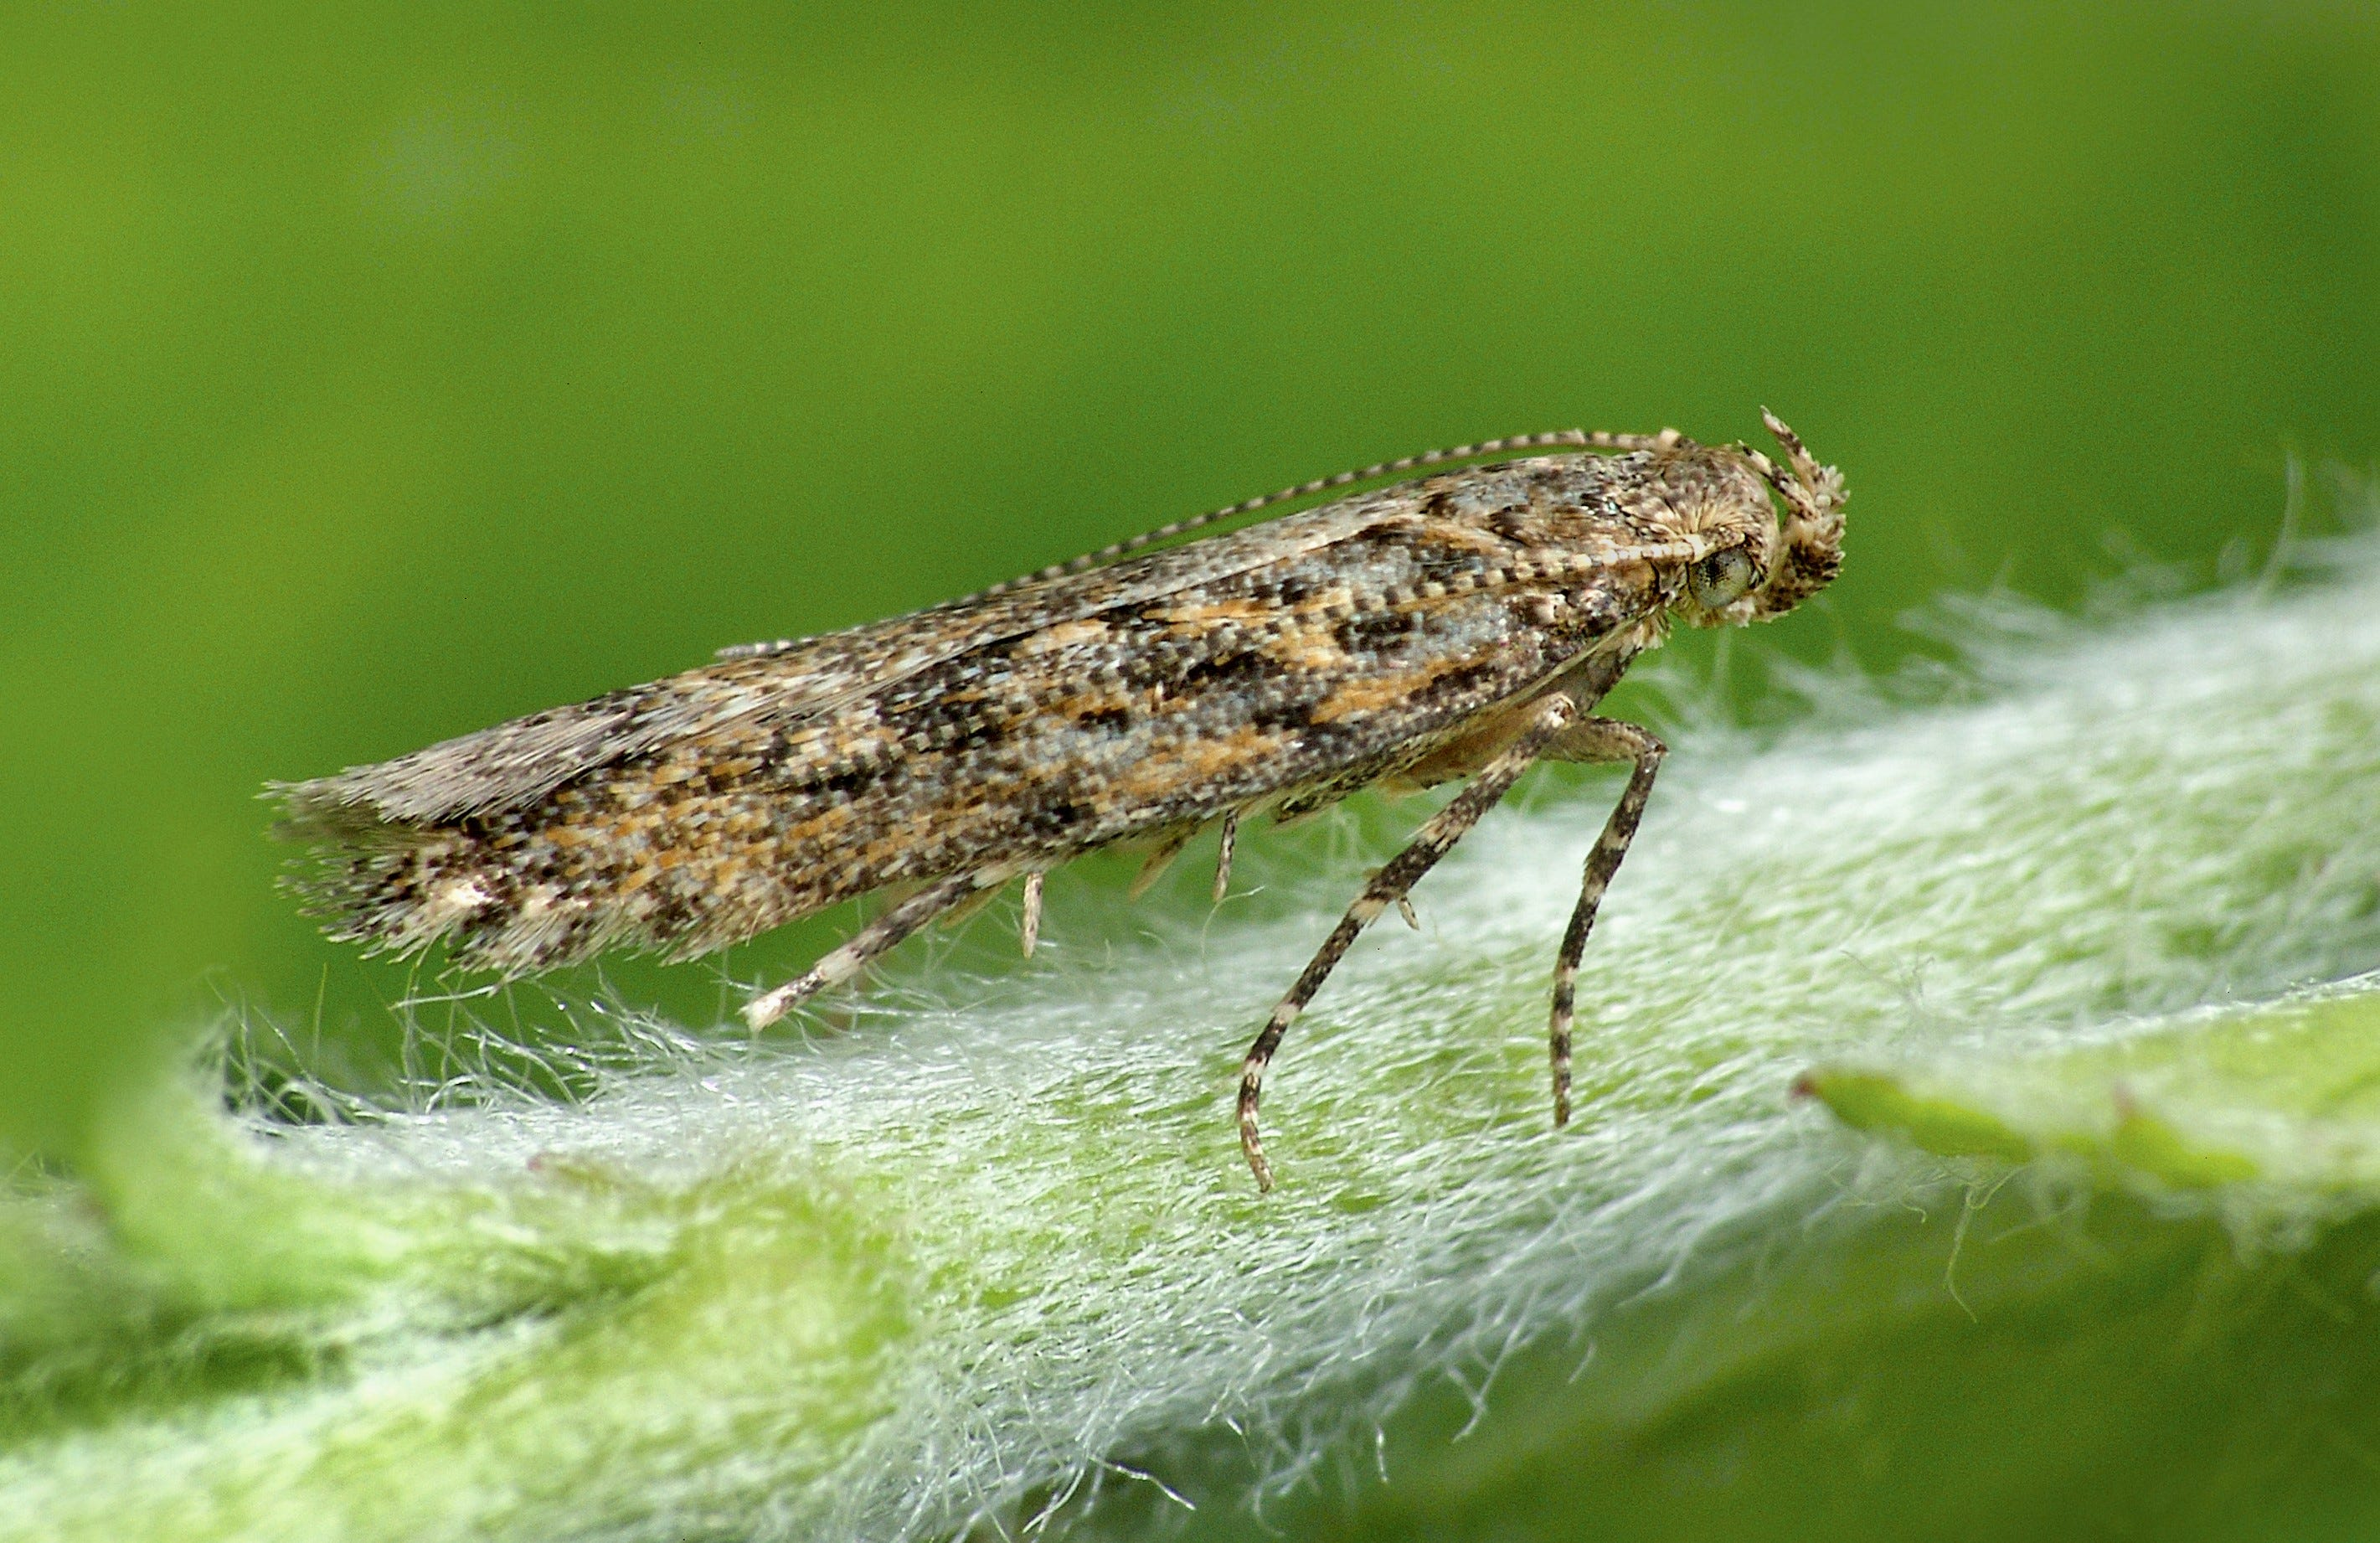 The Tuta absoluta, a moth and type of leafminer capable of destroying an entire crop of nightshade plants such as tomatoes and eggplant.